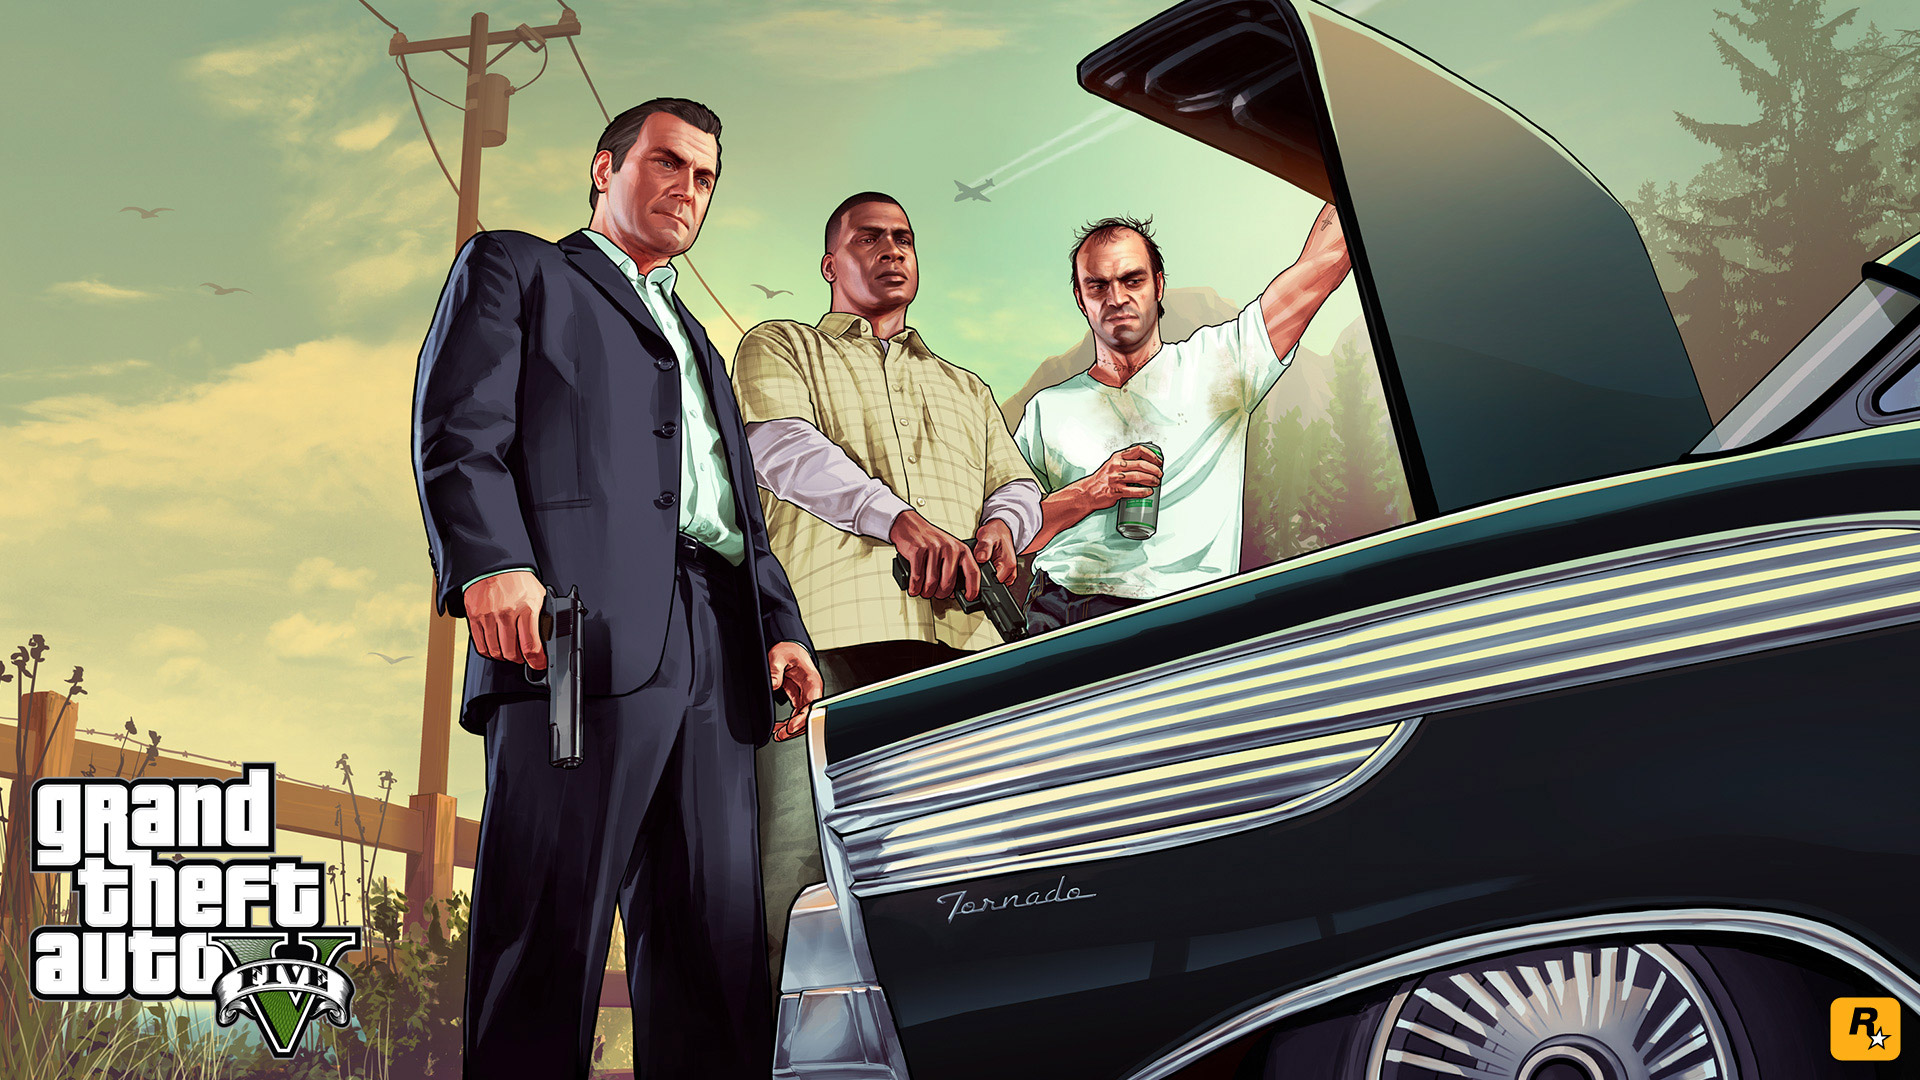 Grand Theft Auto 5 wallpaper 22